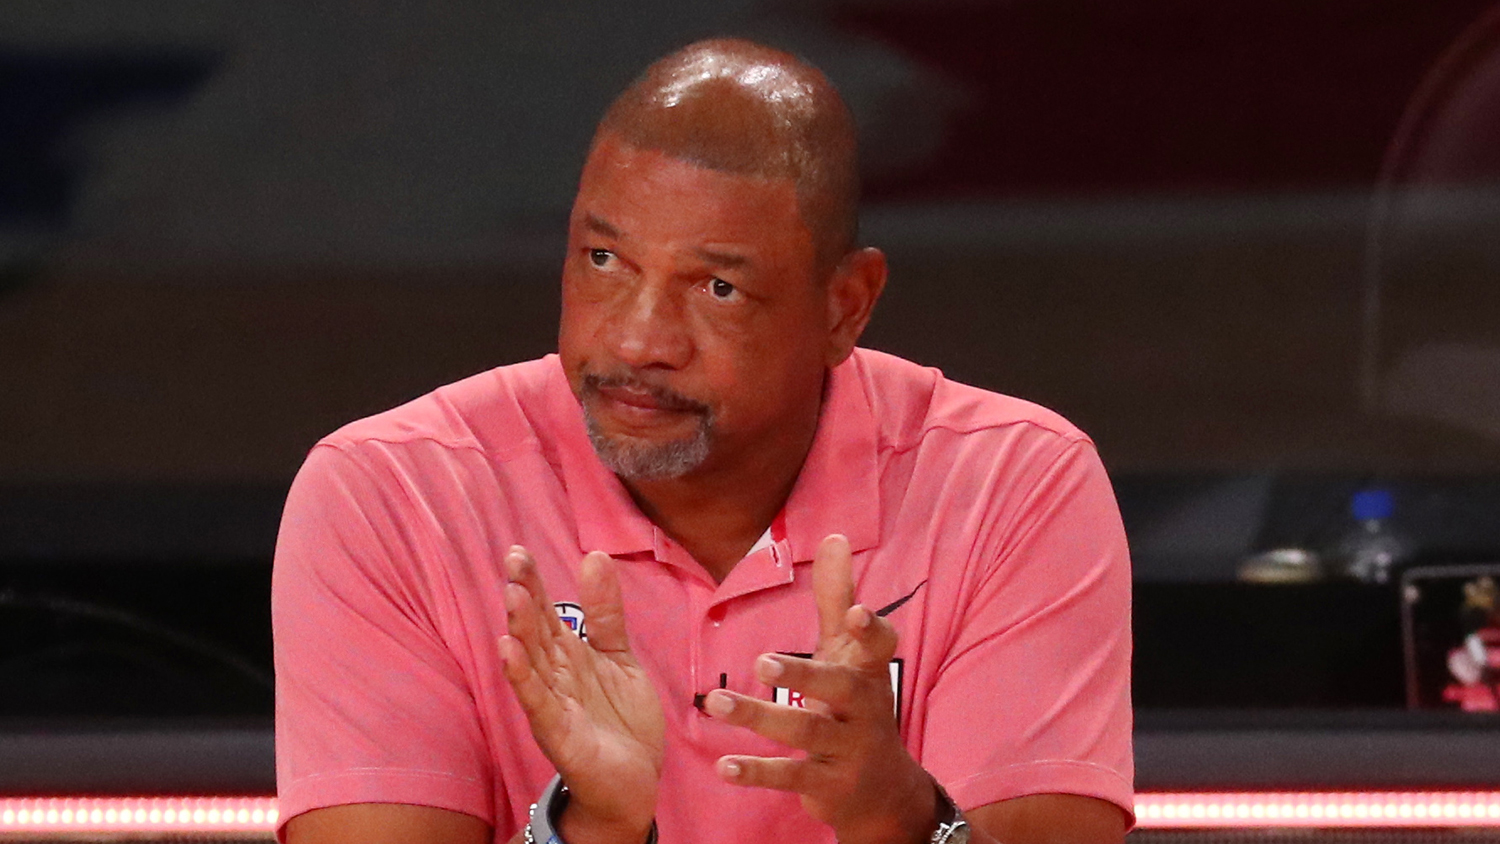 Four things we learned from Doc Rivers' first press conference as Sixers head coach